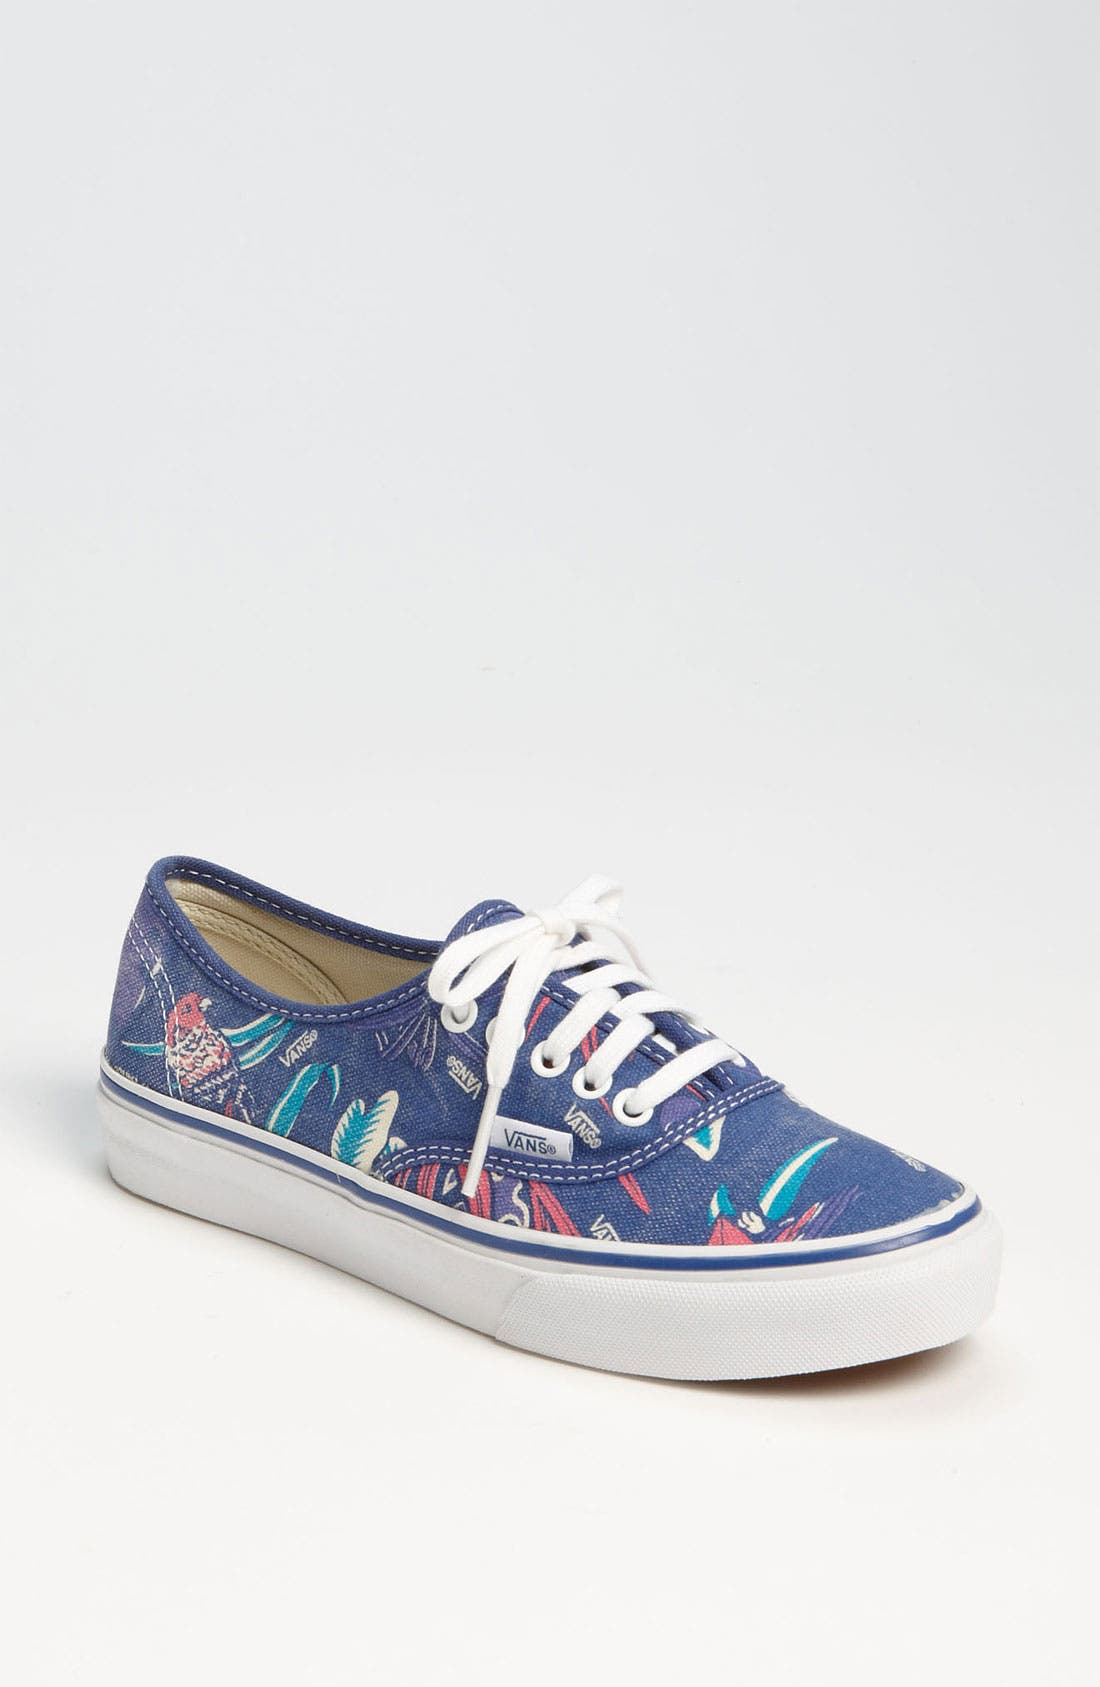 Main Image - Vans 'Authentic - Slim' Chambray Sneaker (Women)